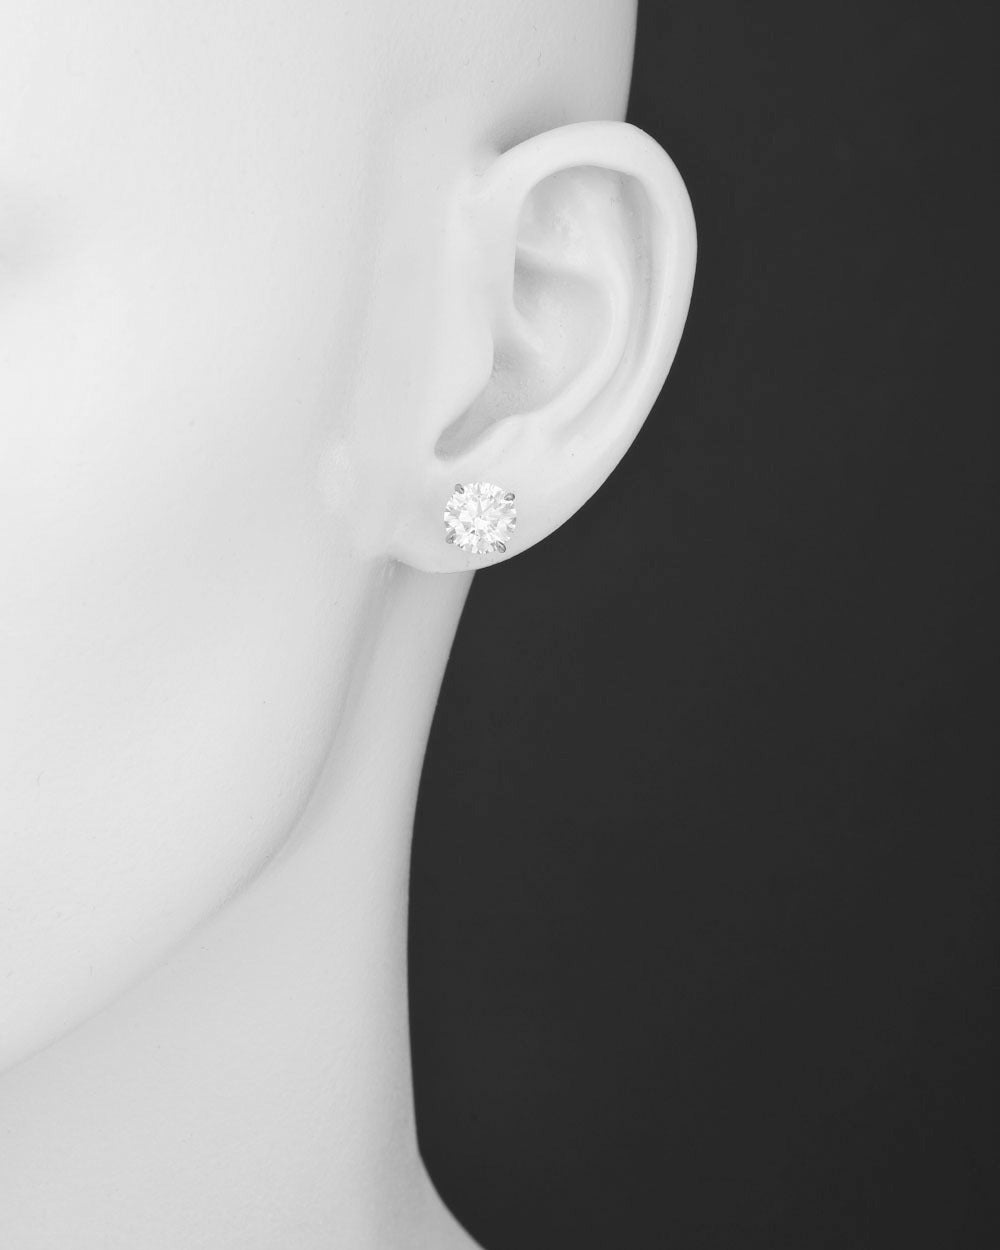 Round brilliant cut diamond stud earrings, showcasing a pair of near-colorless diamonds weighing 4.29 total carats, the diamonds secured in classic four prong platinum settings with posts and friction backs for pierced ears. The earrings are